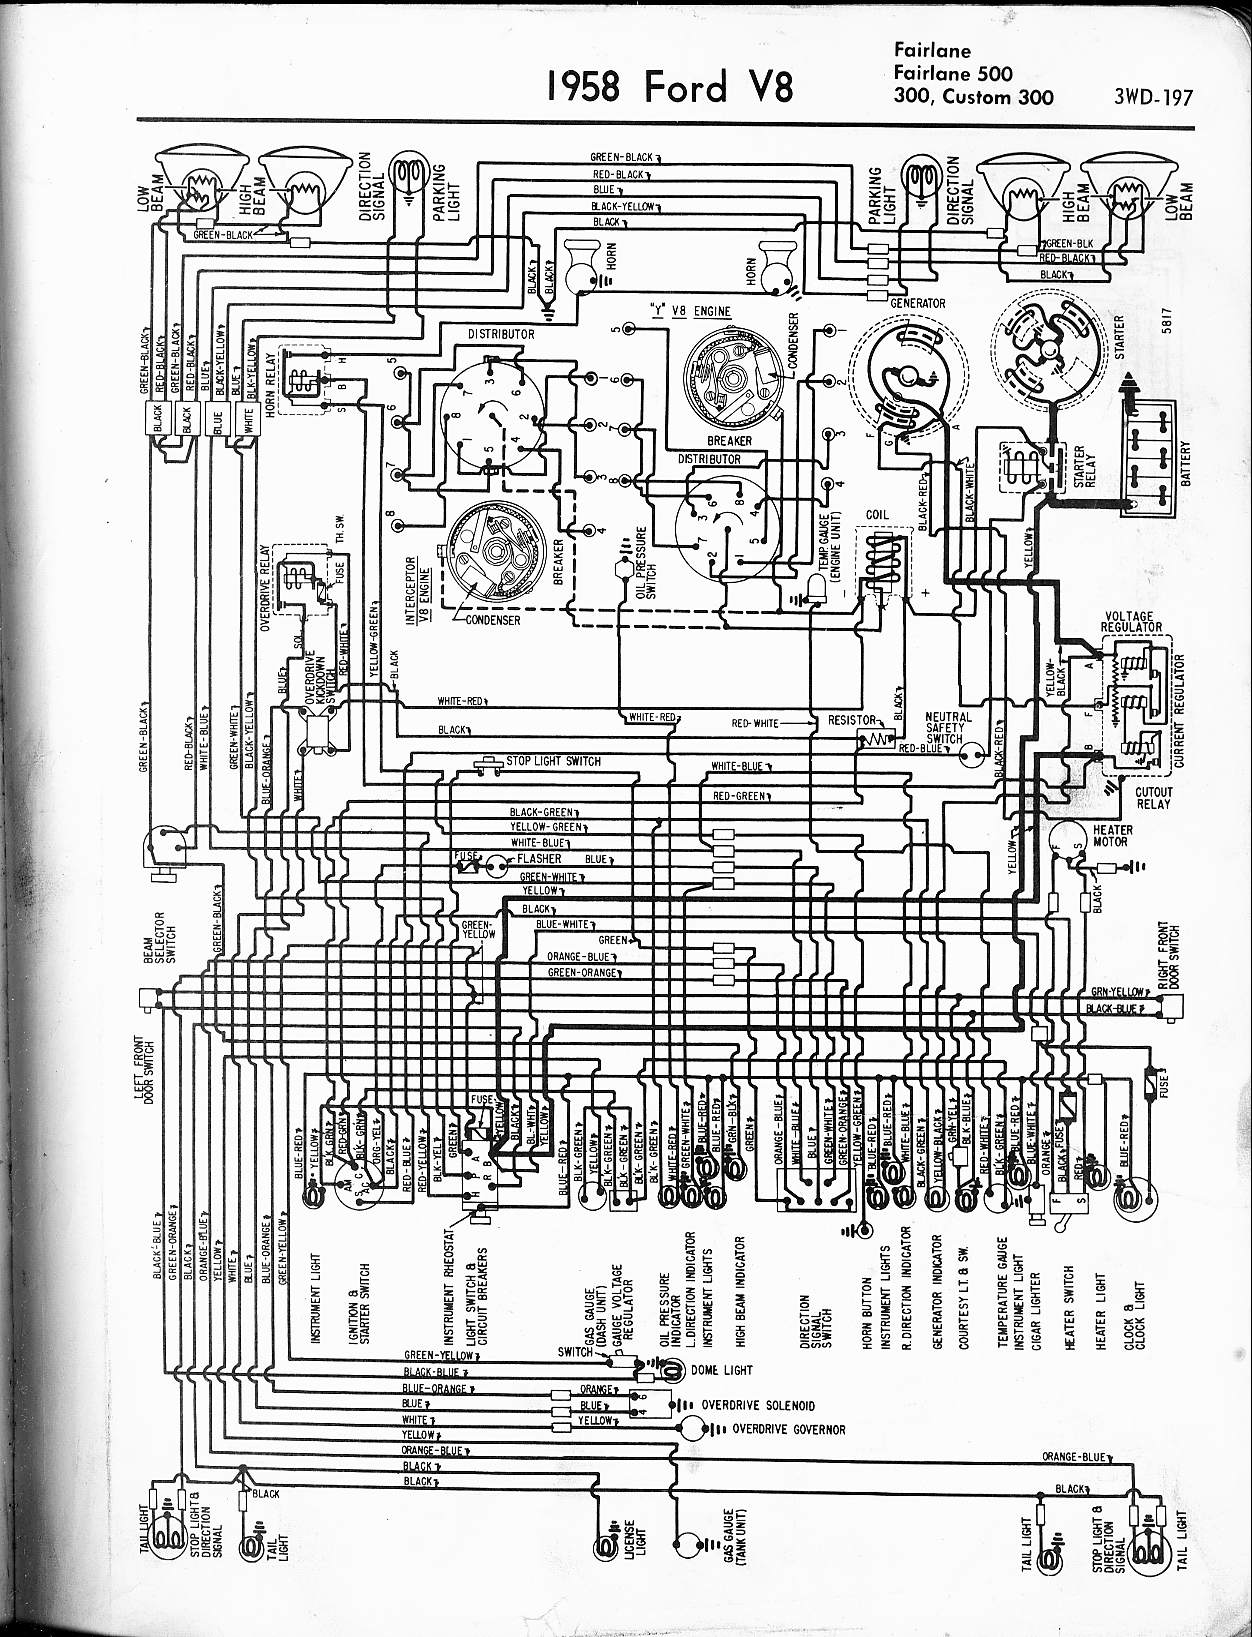 F250 Wiring Diagram Another Diagrams Library 2005 F150 Ignition 57 65 Ford Rh Oldcarmanualproject Com Trailer